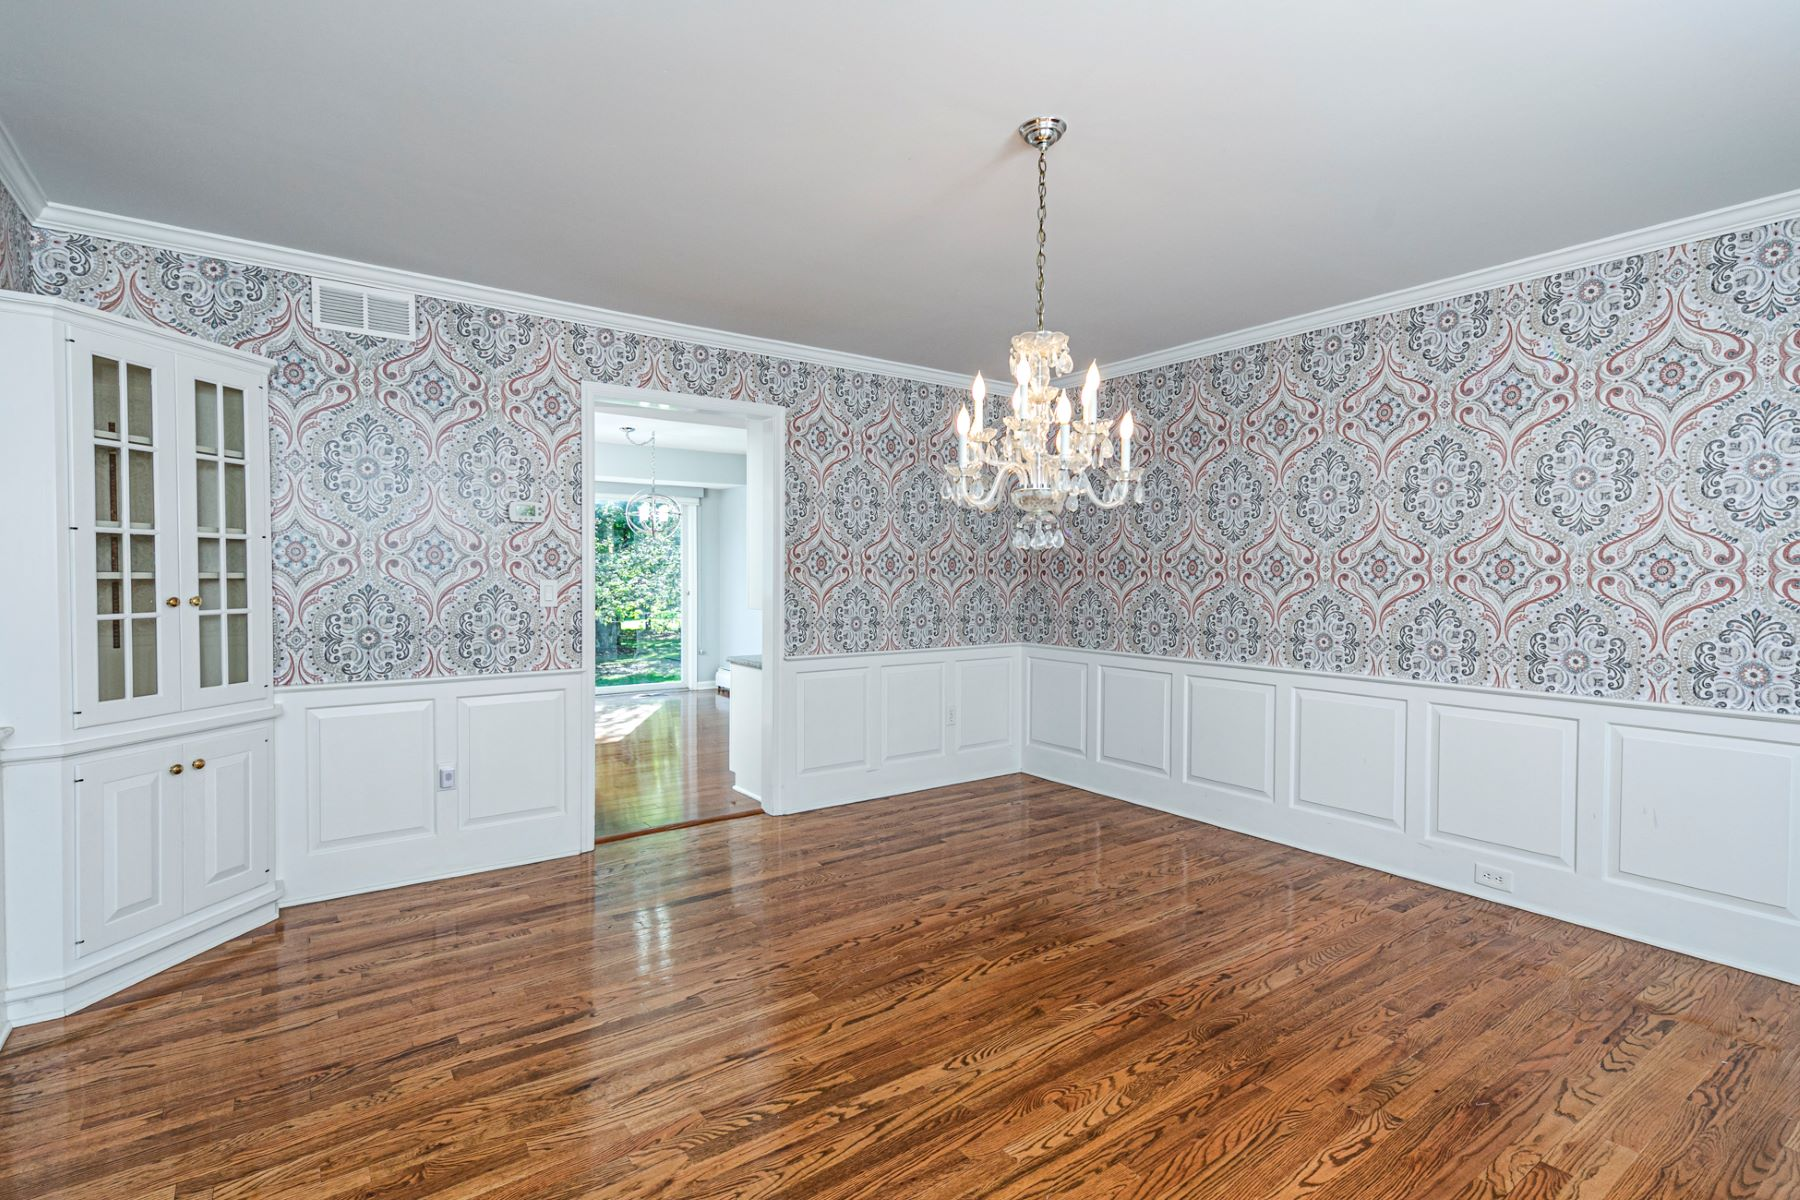 Additional photo for property listing at Nicely Updated with Bonus Space to Suit Any Need 9 Foxcroft Drive, Princeton, New Jersey 08540 United States